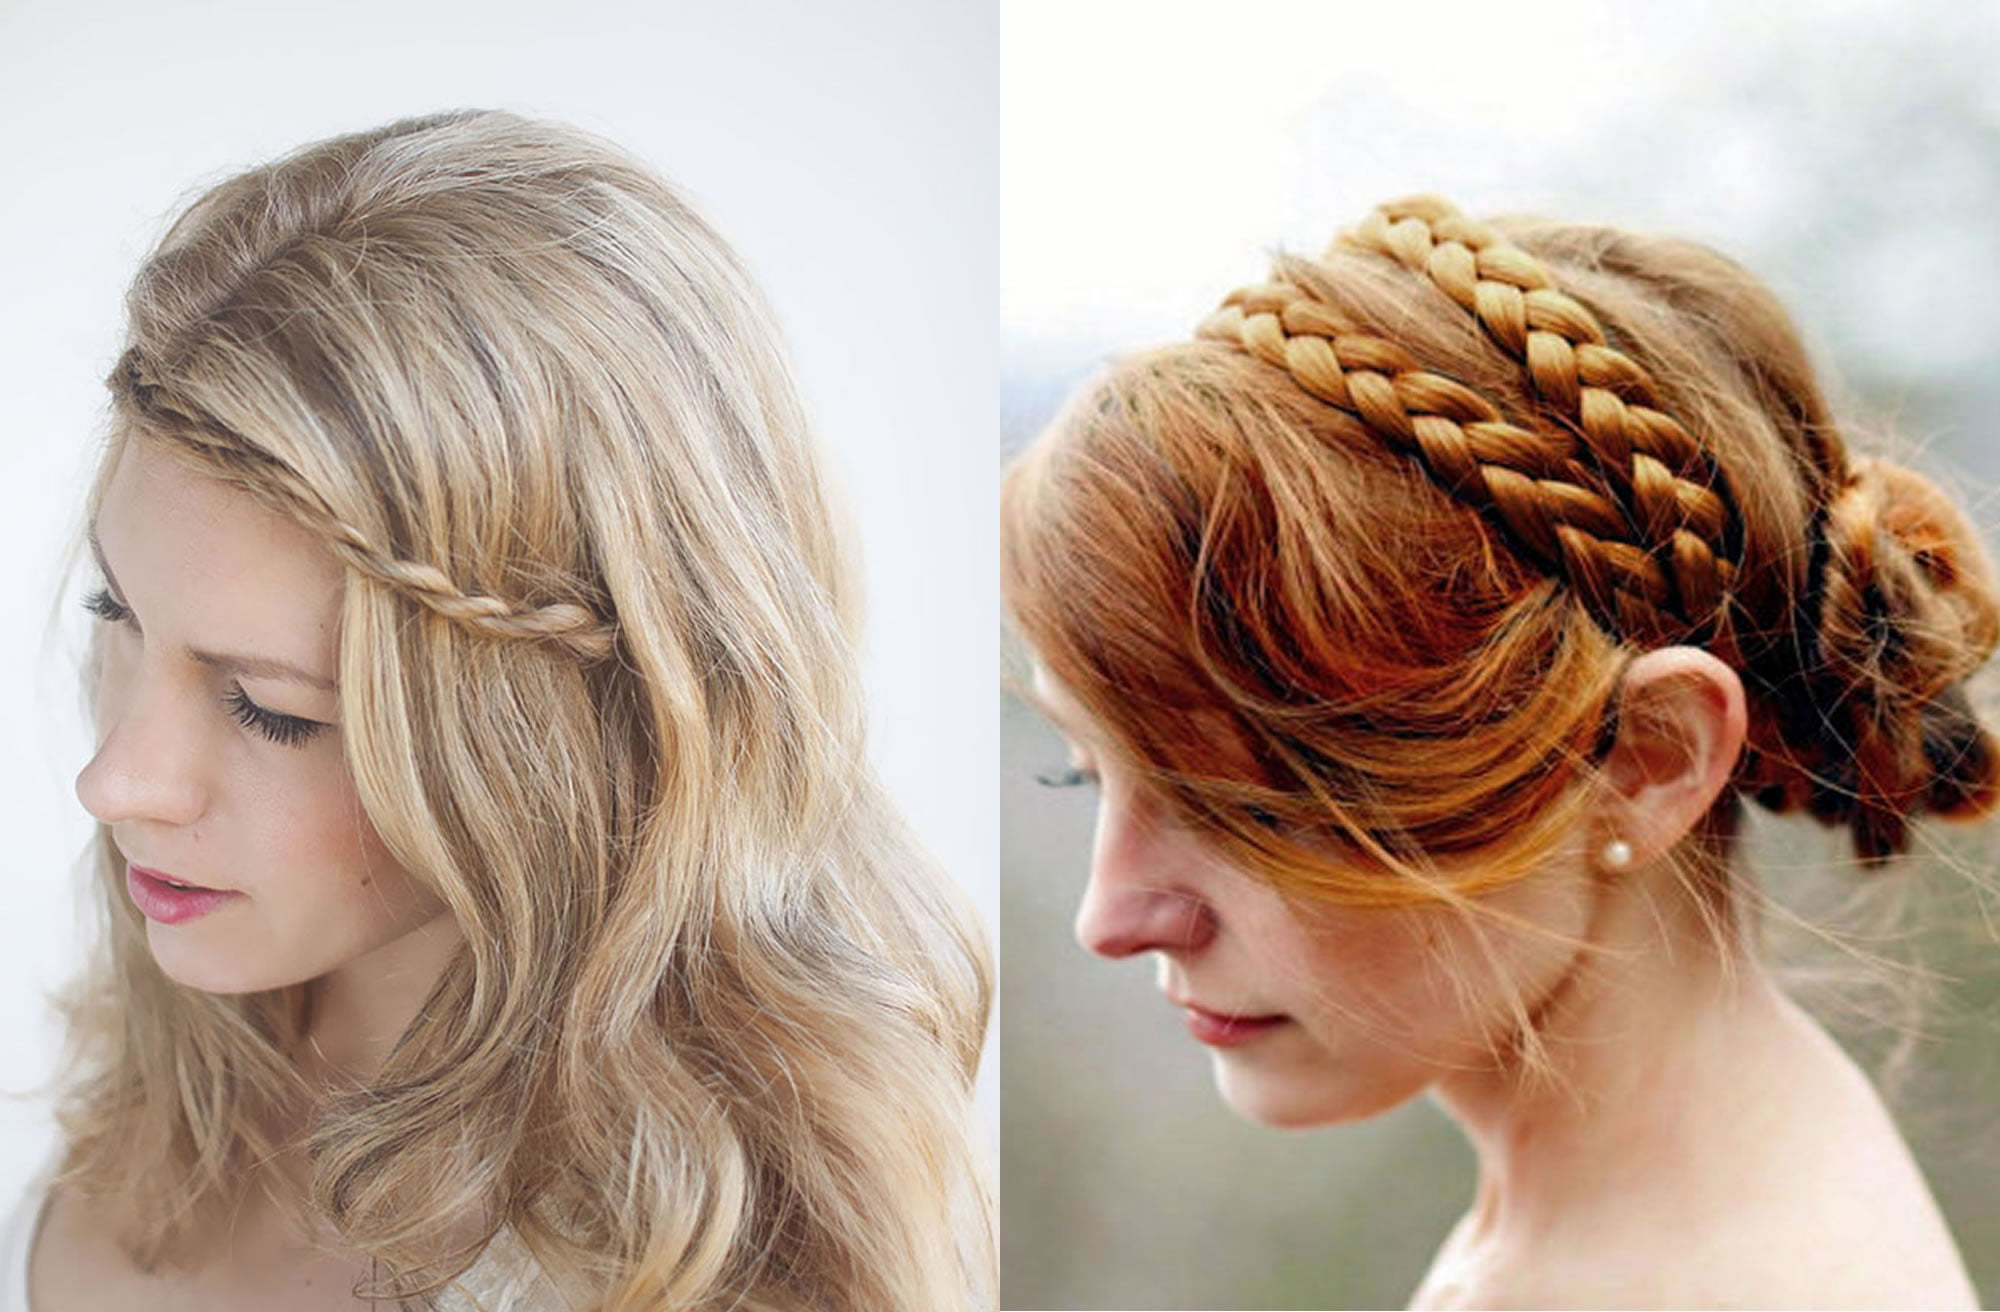 Hair Style Website: Braided Headband Hairstyles For Ladies For Summer 2018